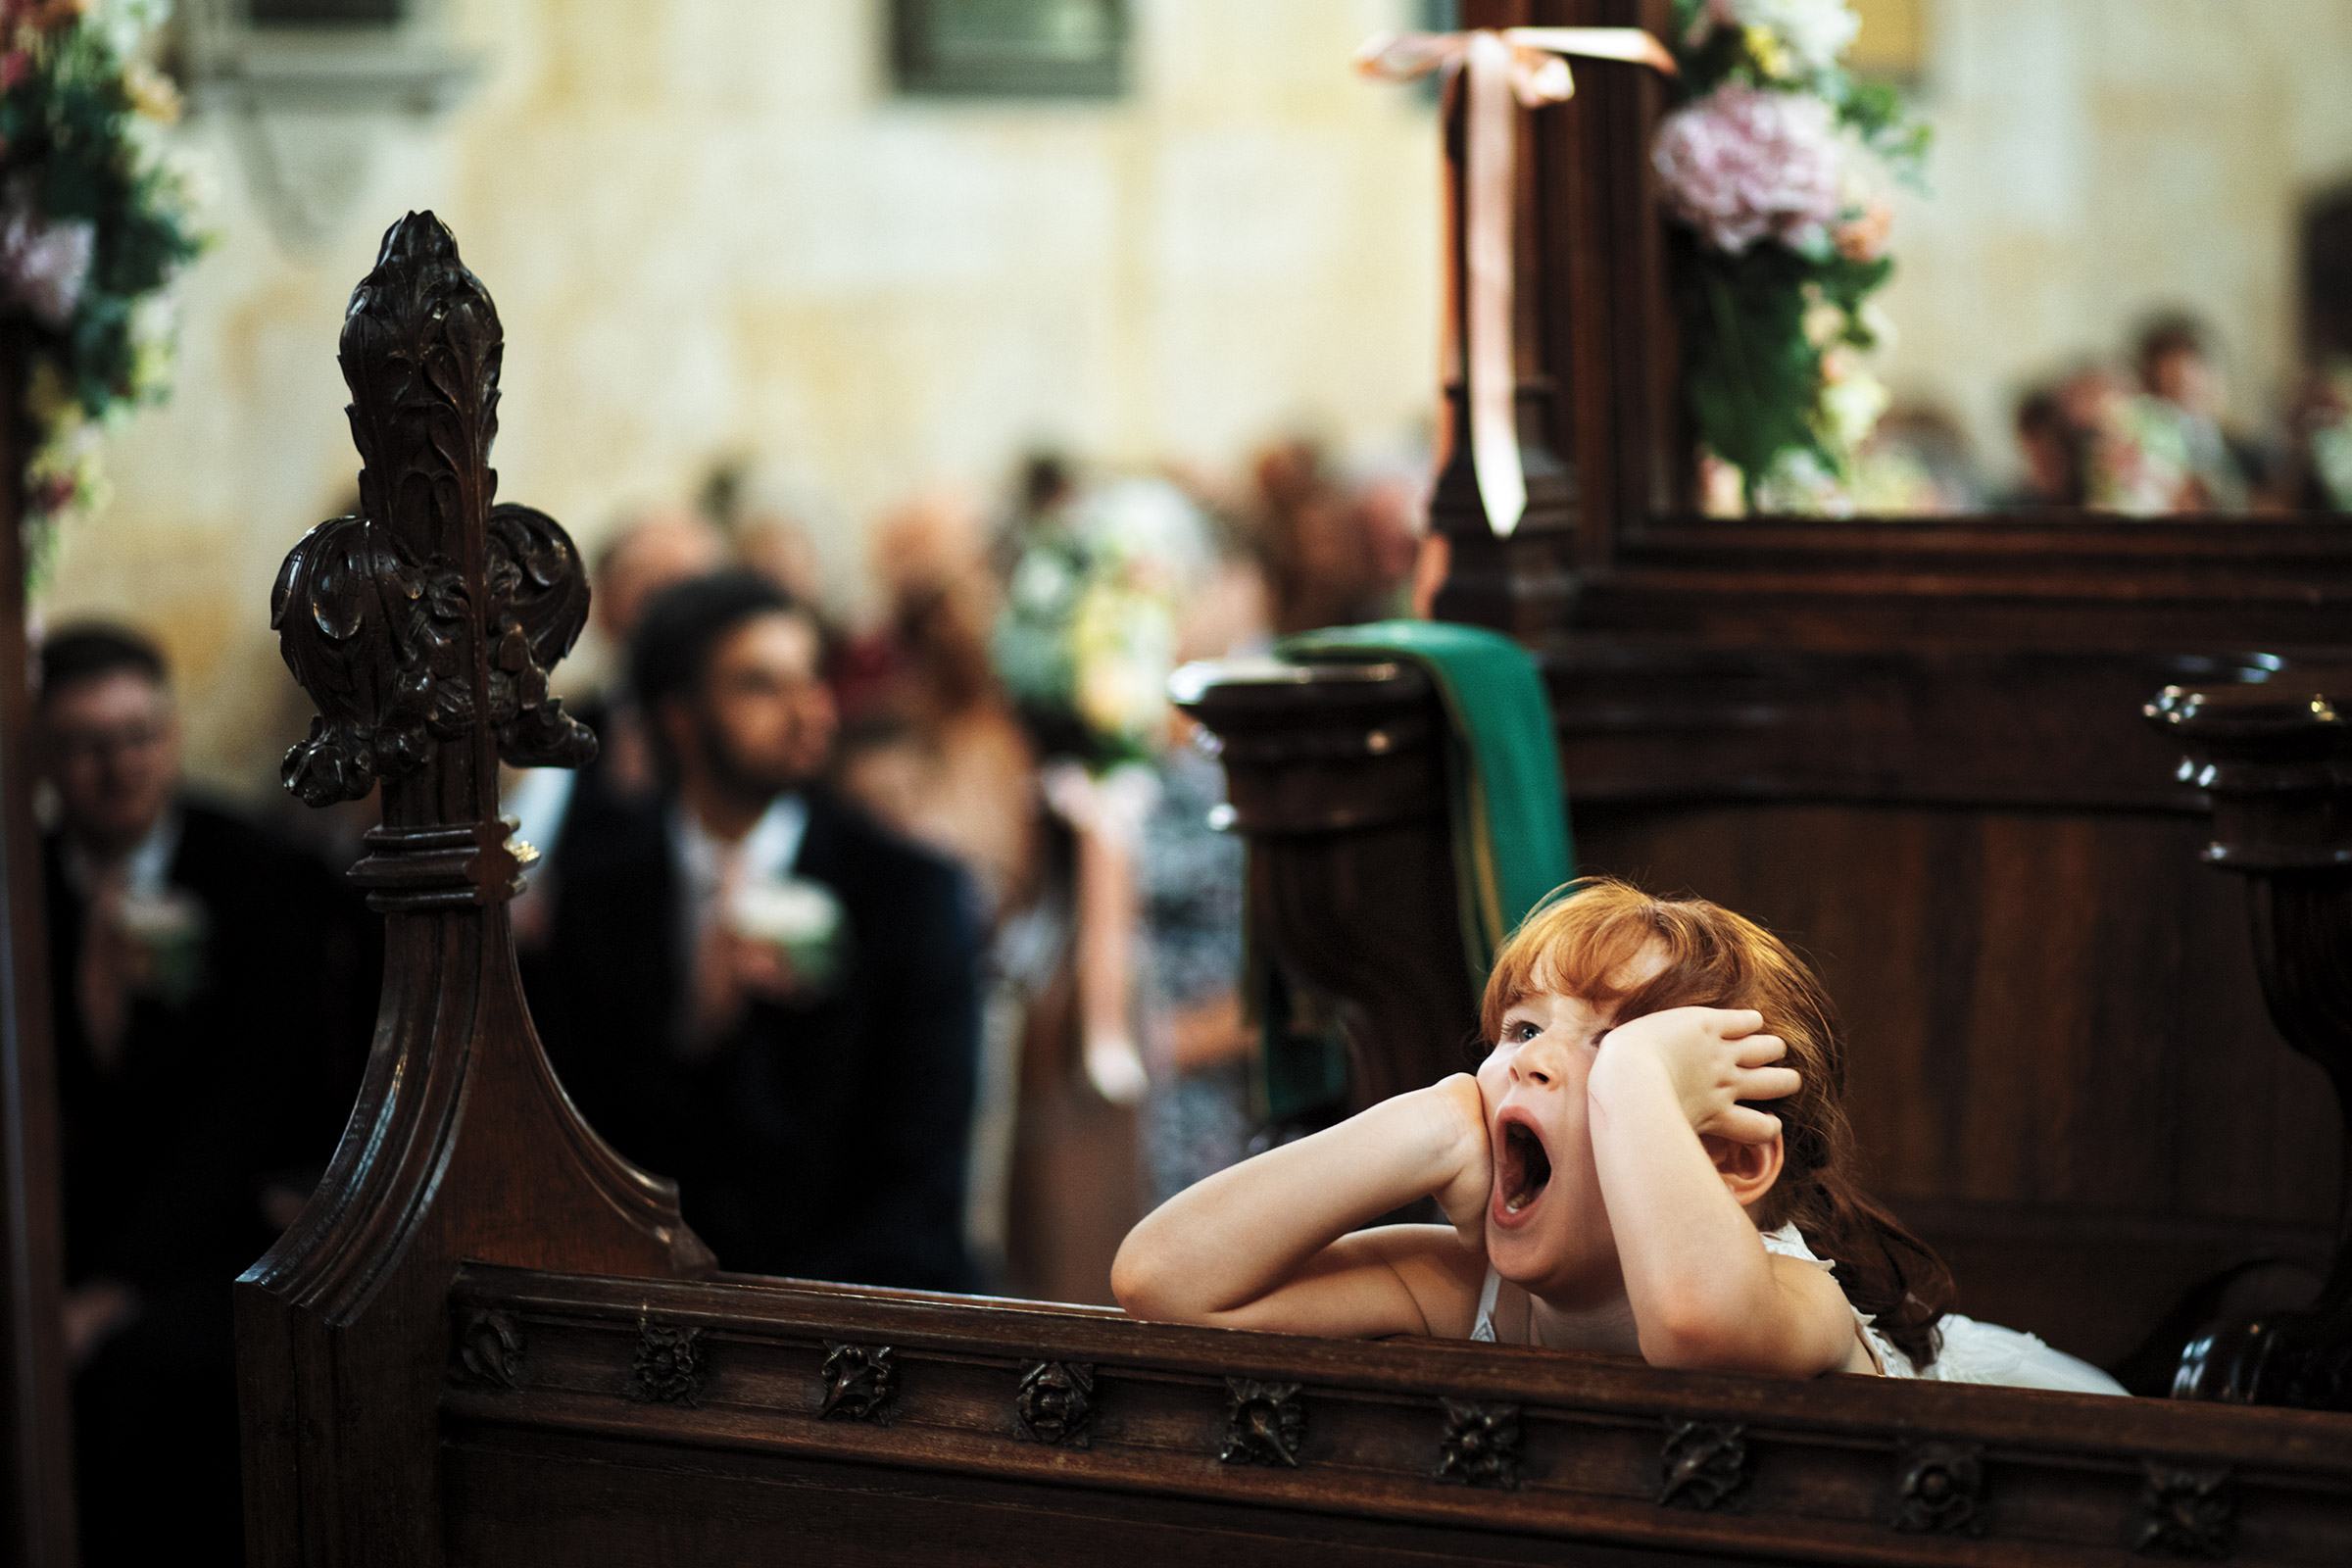 little girl yawning during ceremony - photo by Jeff Ascough